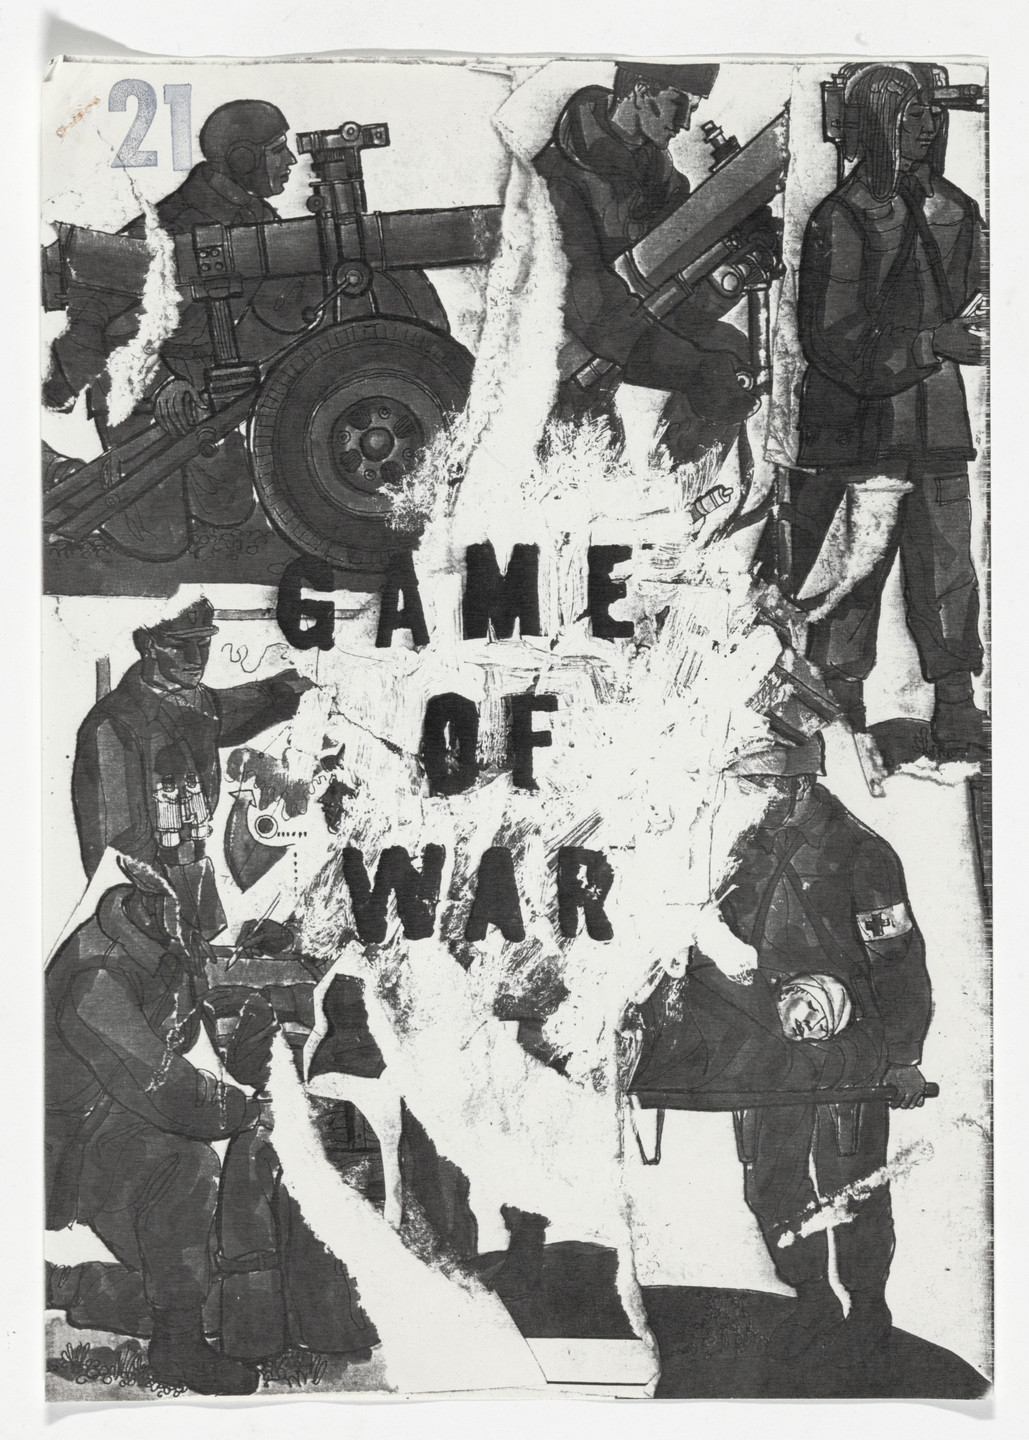 Milan Knížák. Game of War from Performance Files. 1965